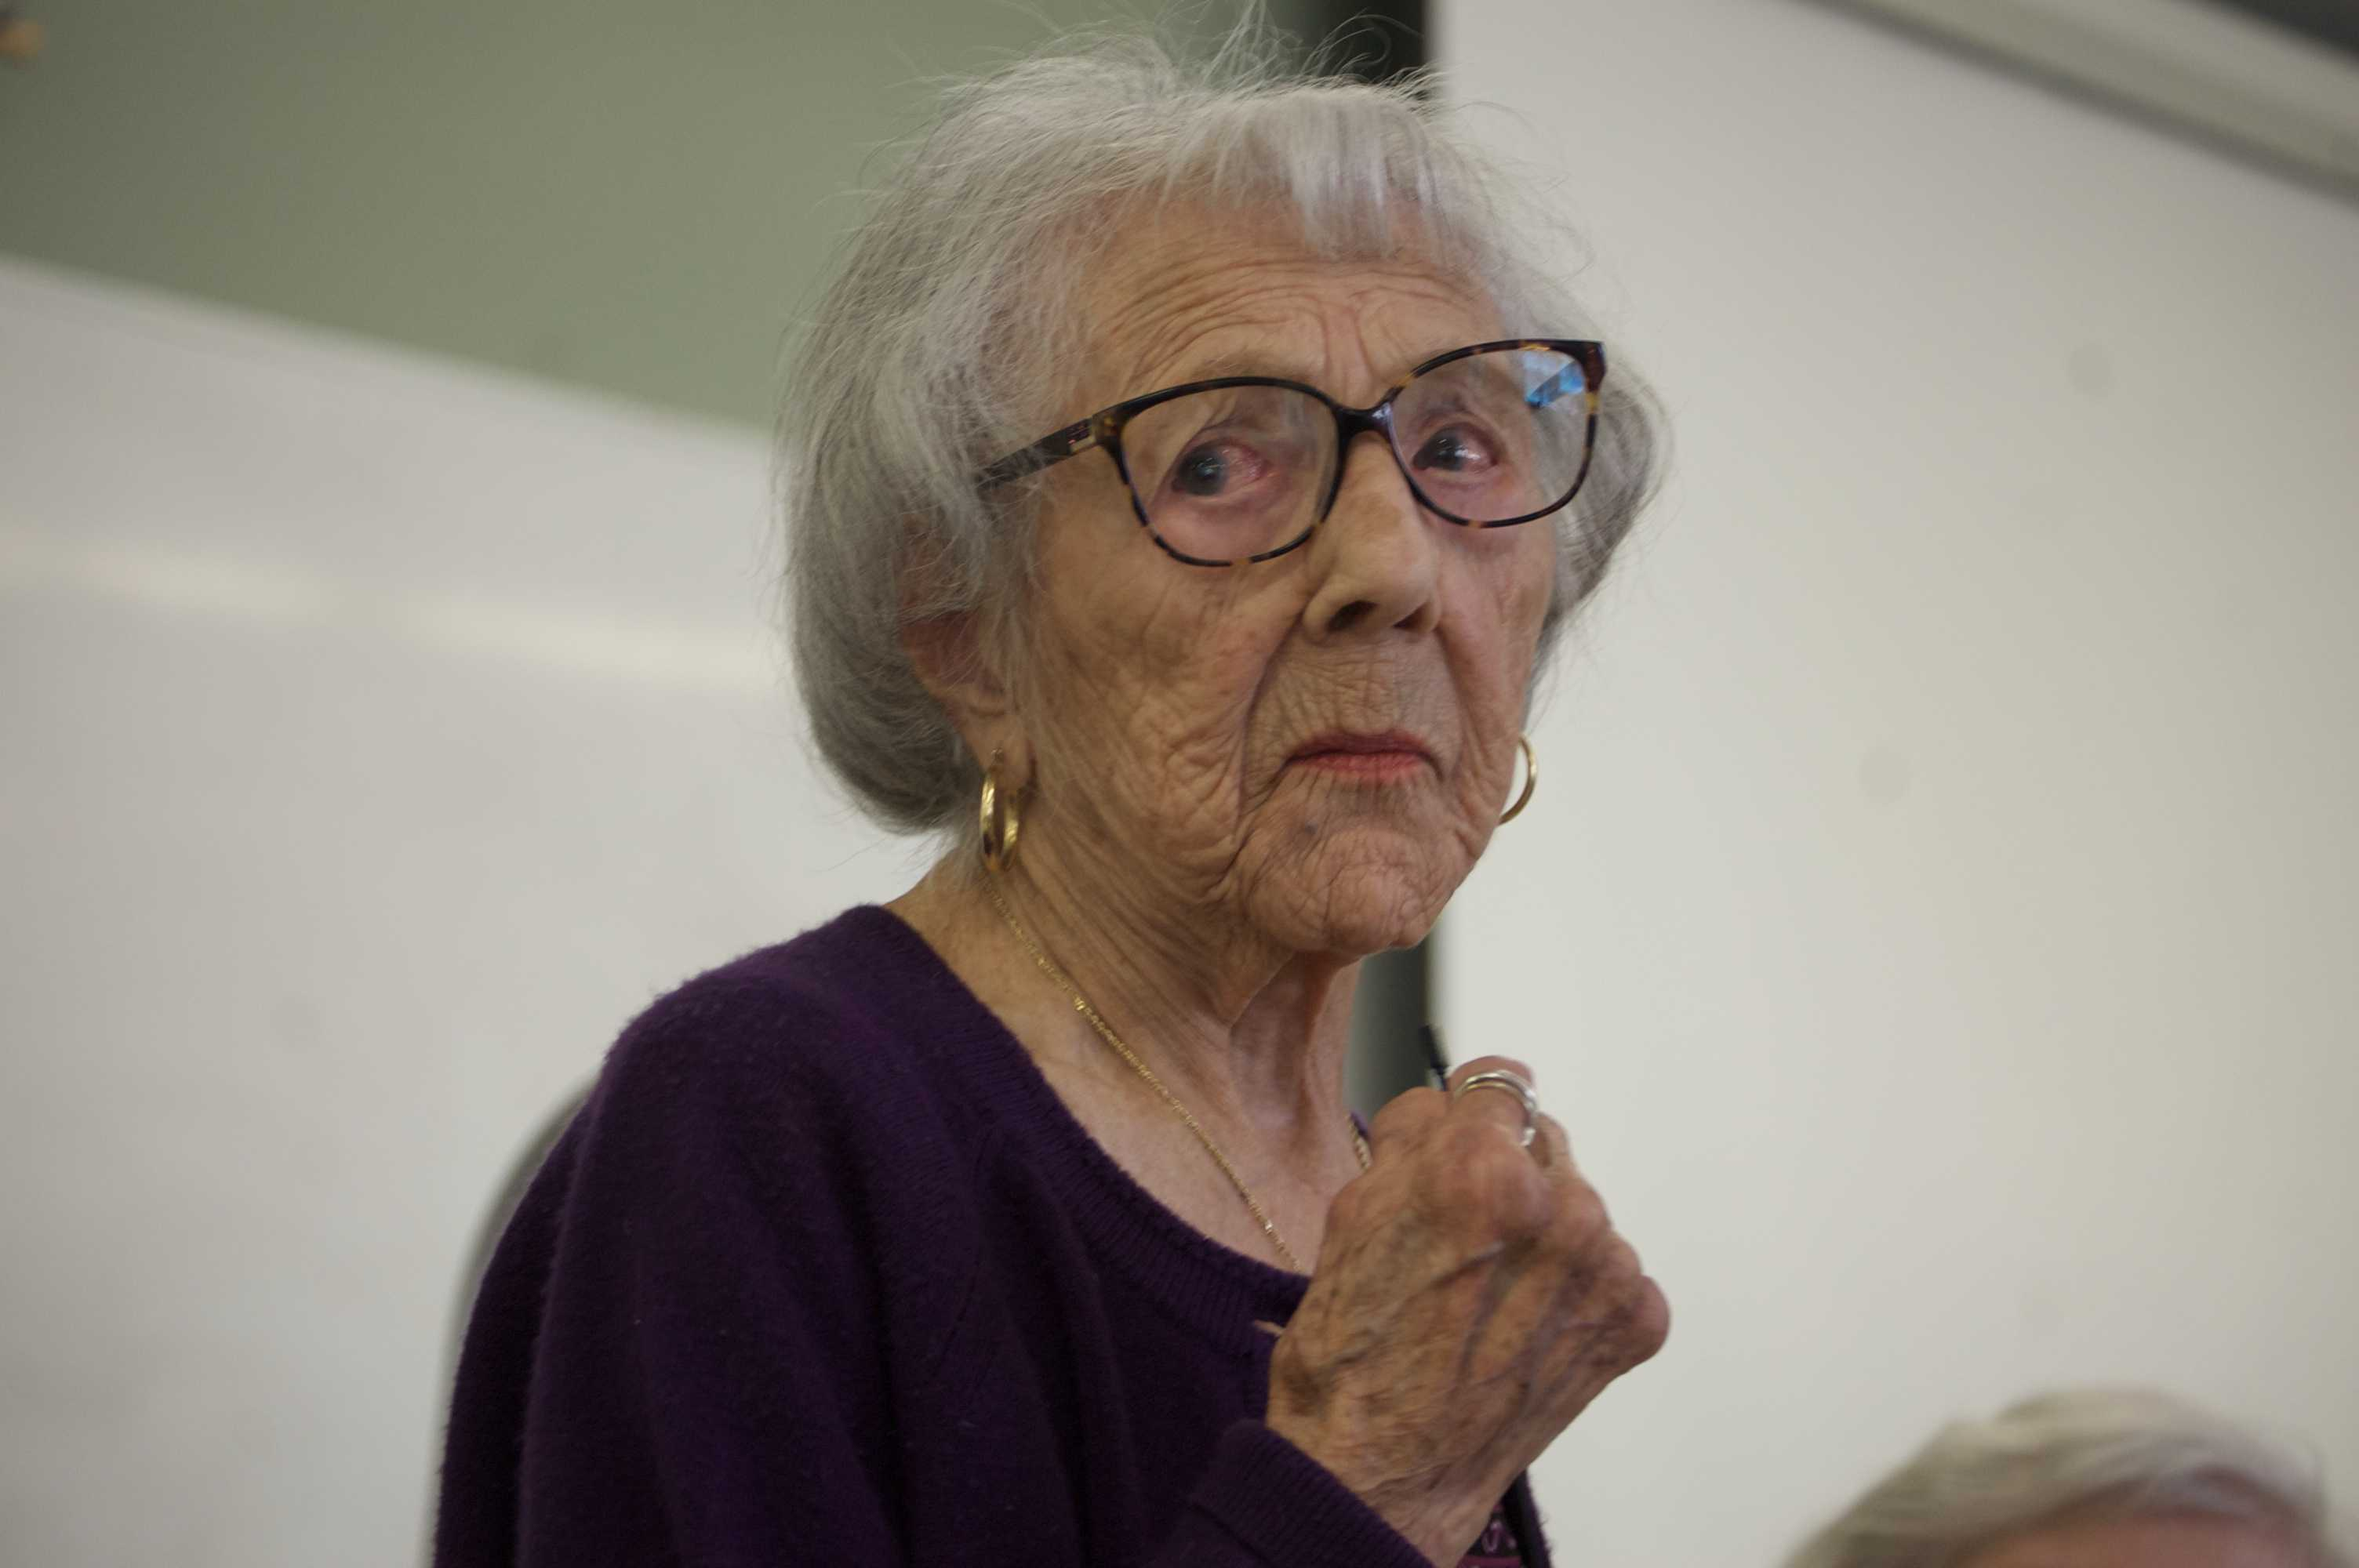 105-year-old woman, Connie Farrell Weinberg, talked to Helen Dosik's sociology class on April 25  about her hip surgery and her life over a century Photo credit: Joanna Rosales